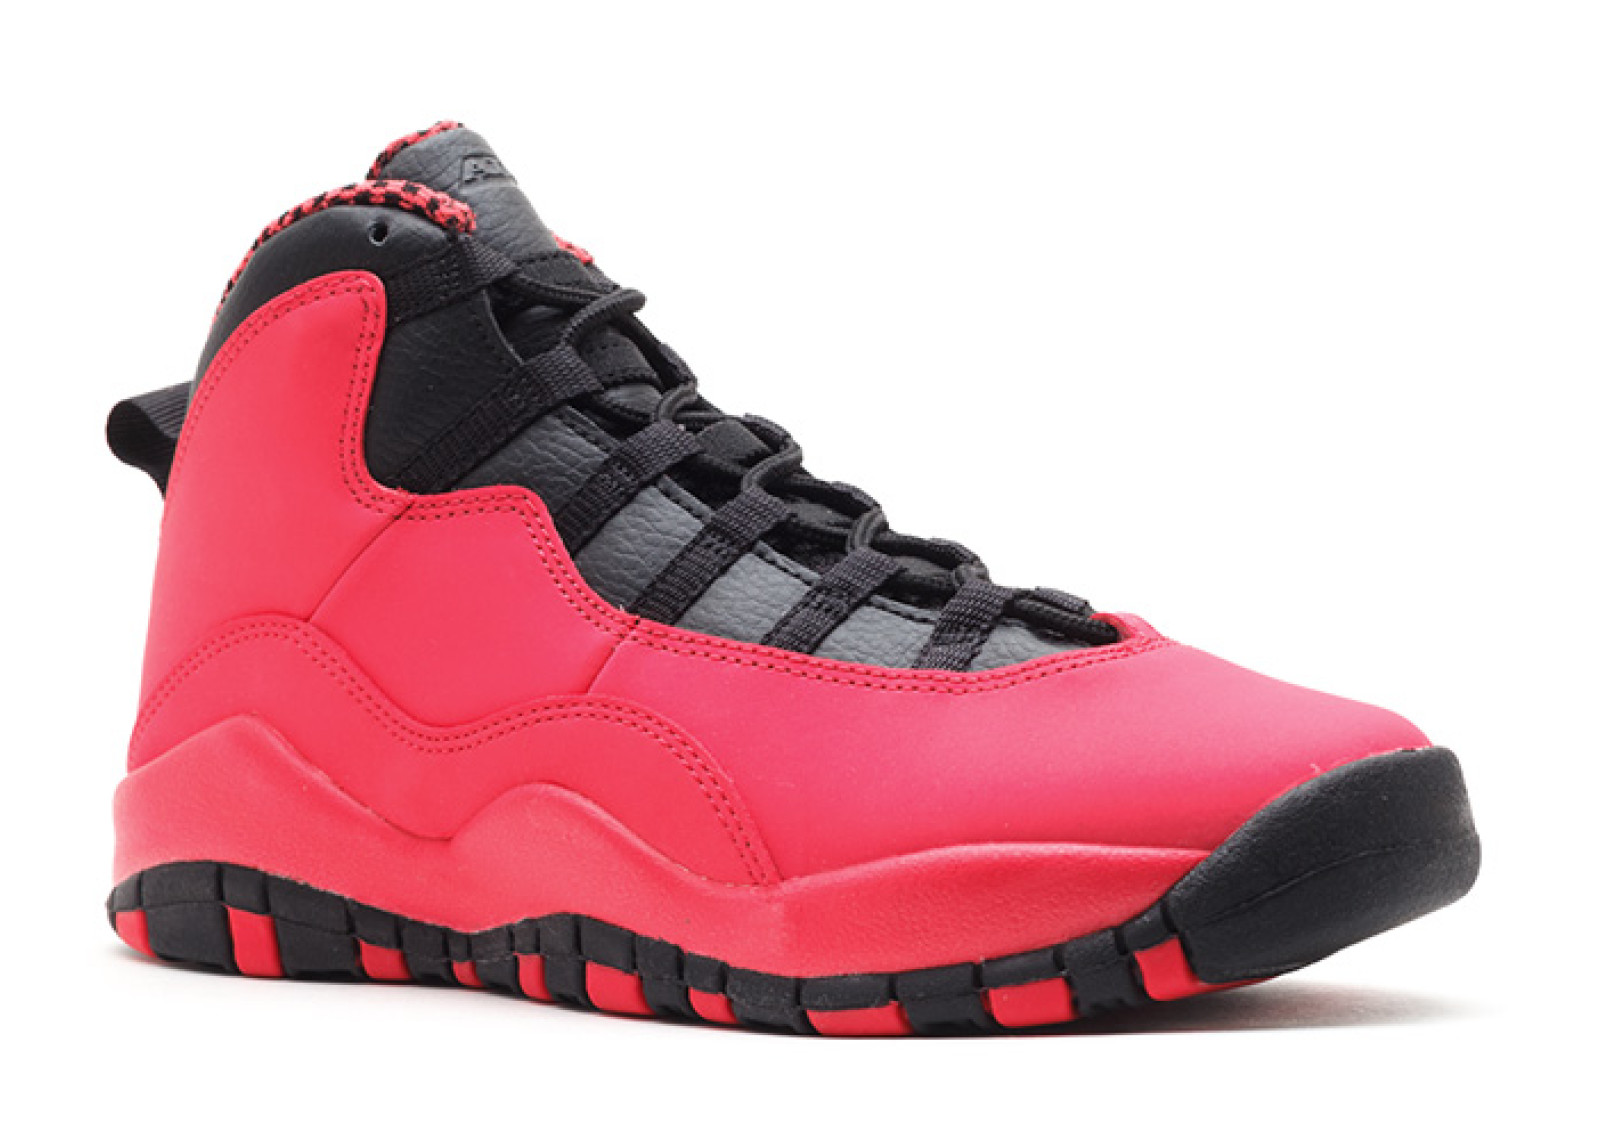 043cf1821e27 Girls Air Jordan 10 Retro (Gs) - 487211-605 - Size 4